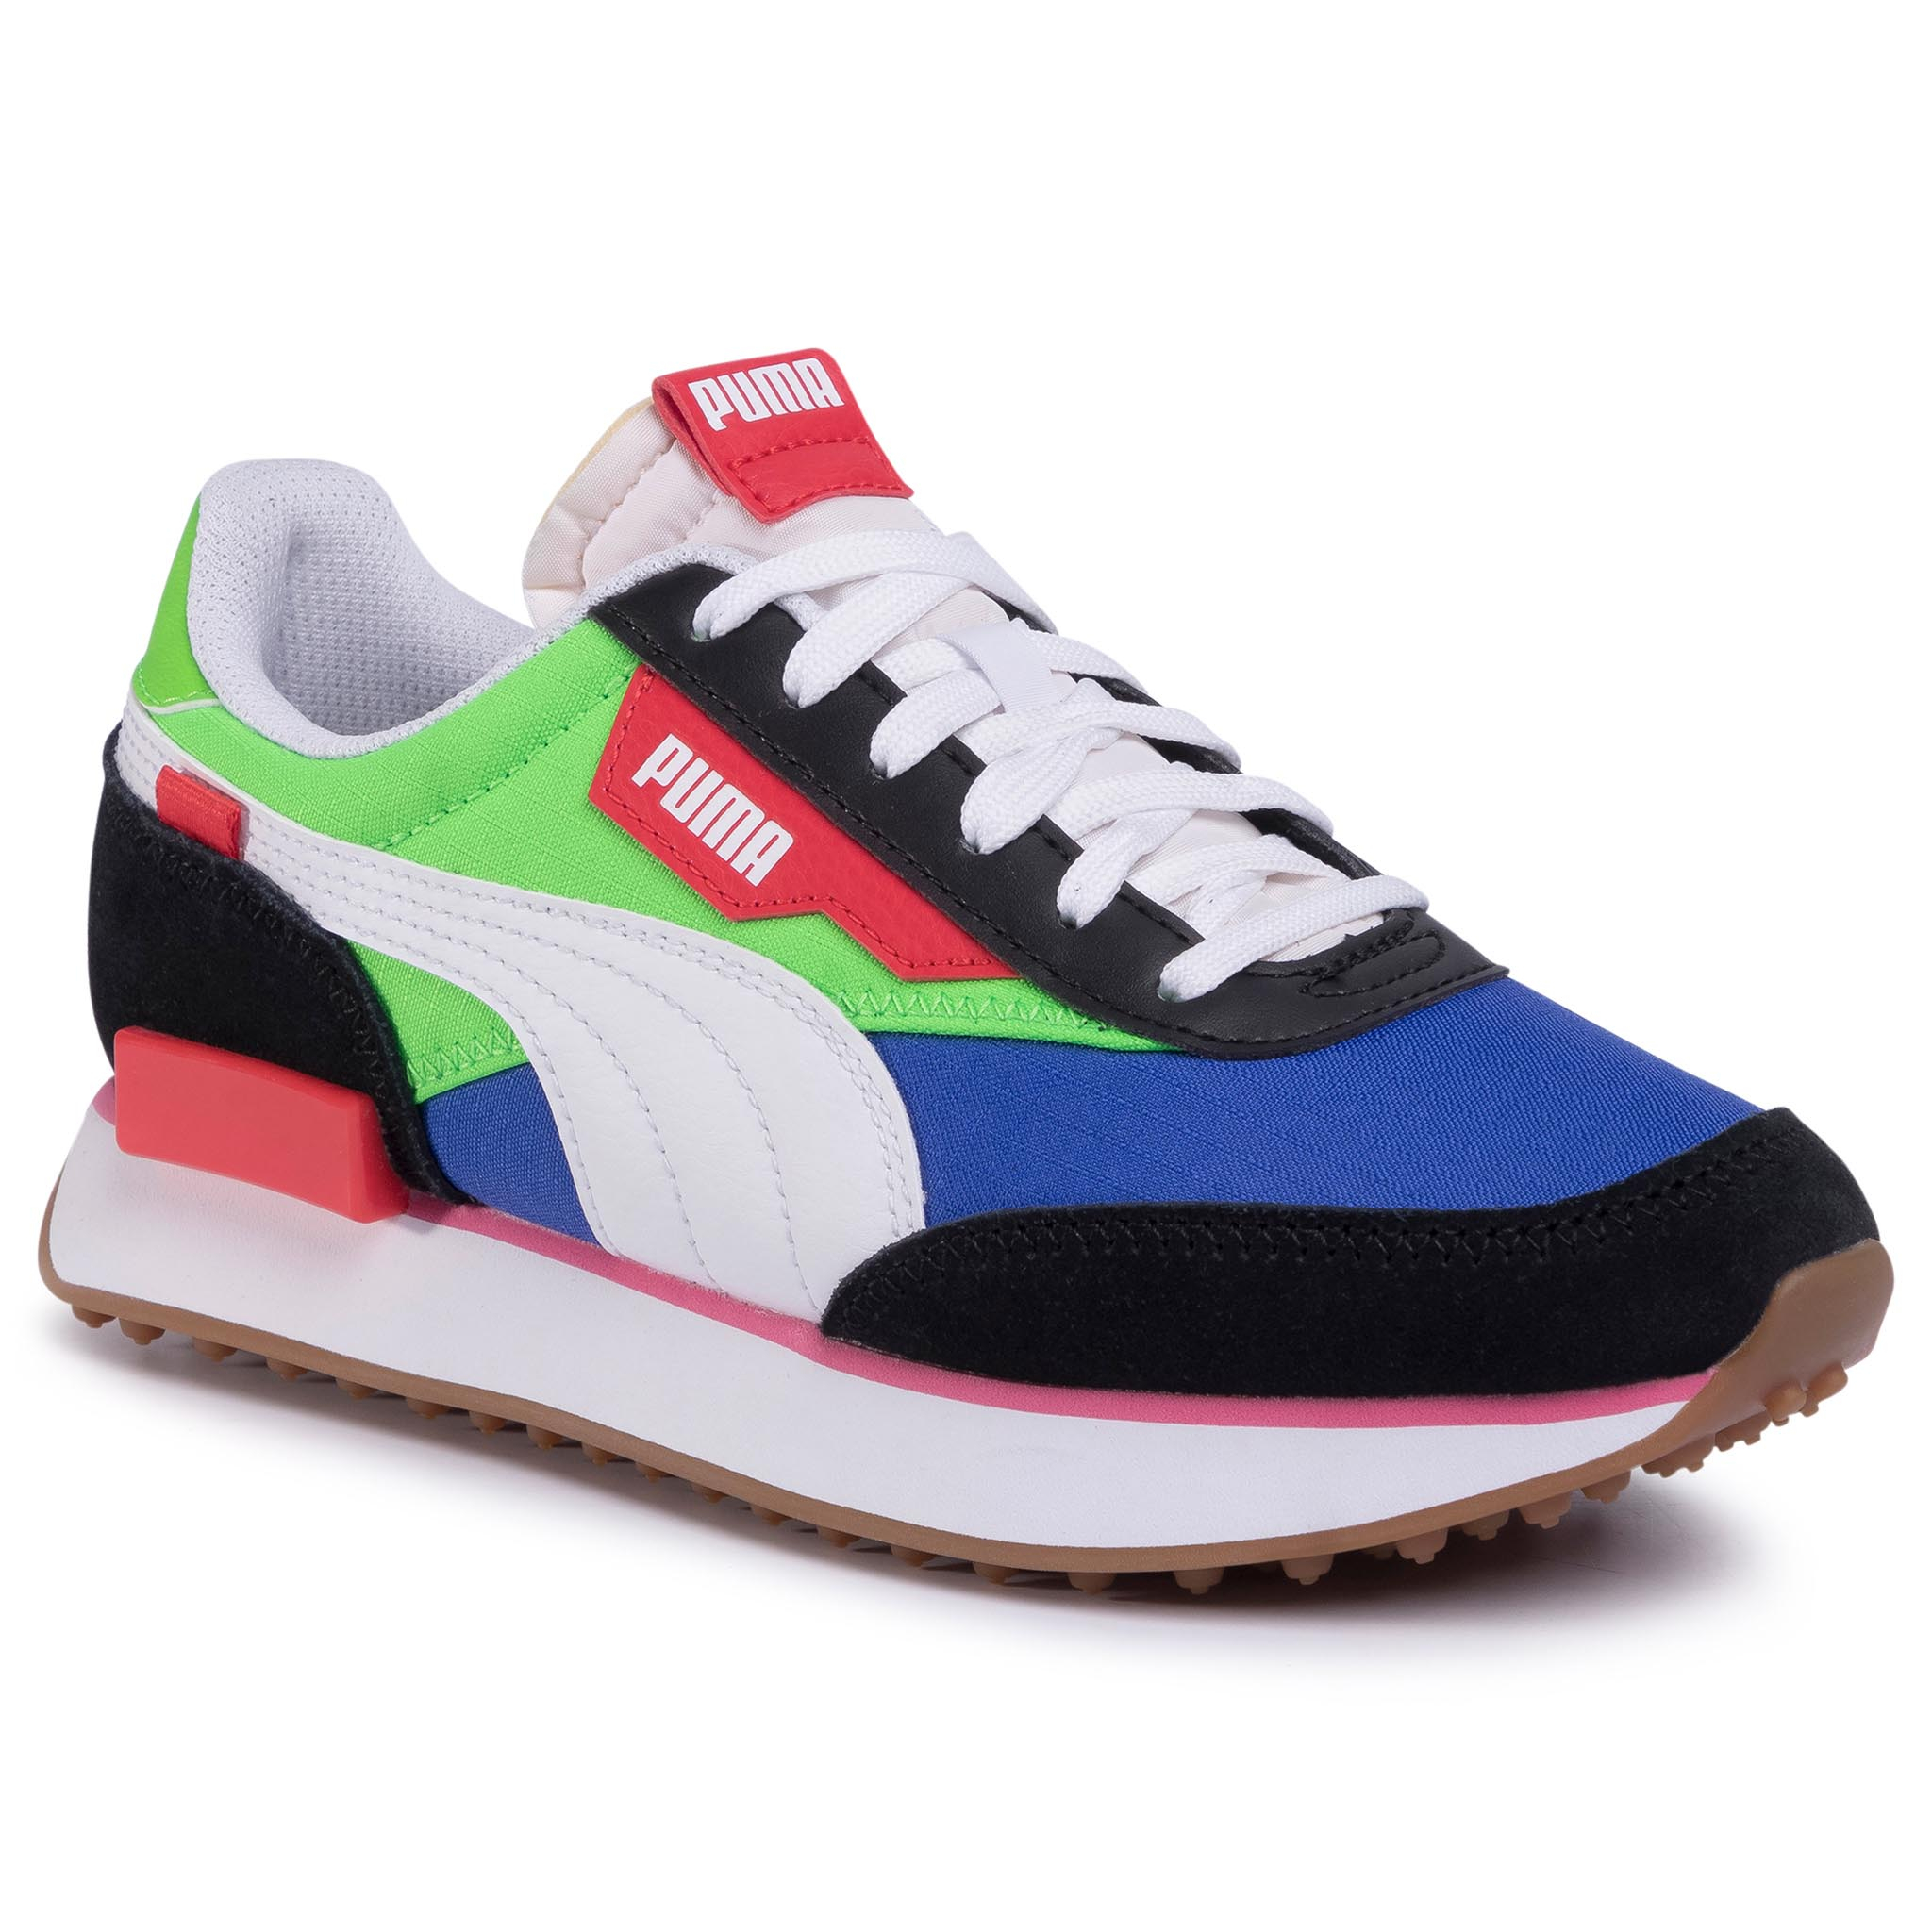 Sneakers PUMA - Future Rider Play On Jr 372349 01 PumaB/Fluo Green/Dazzing Blue